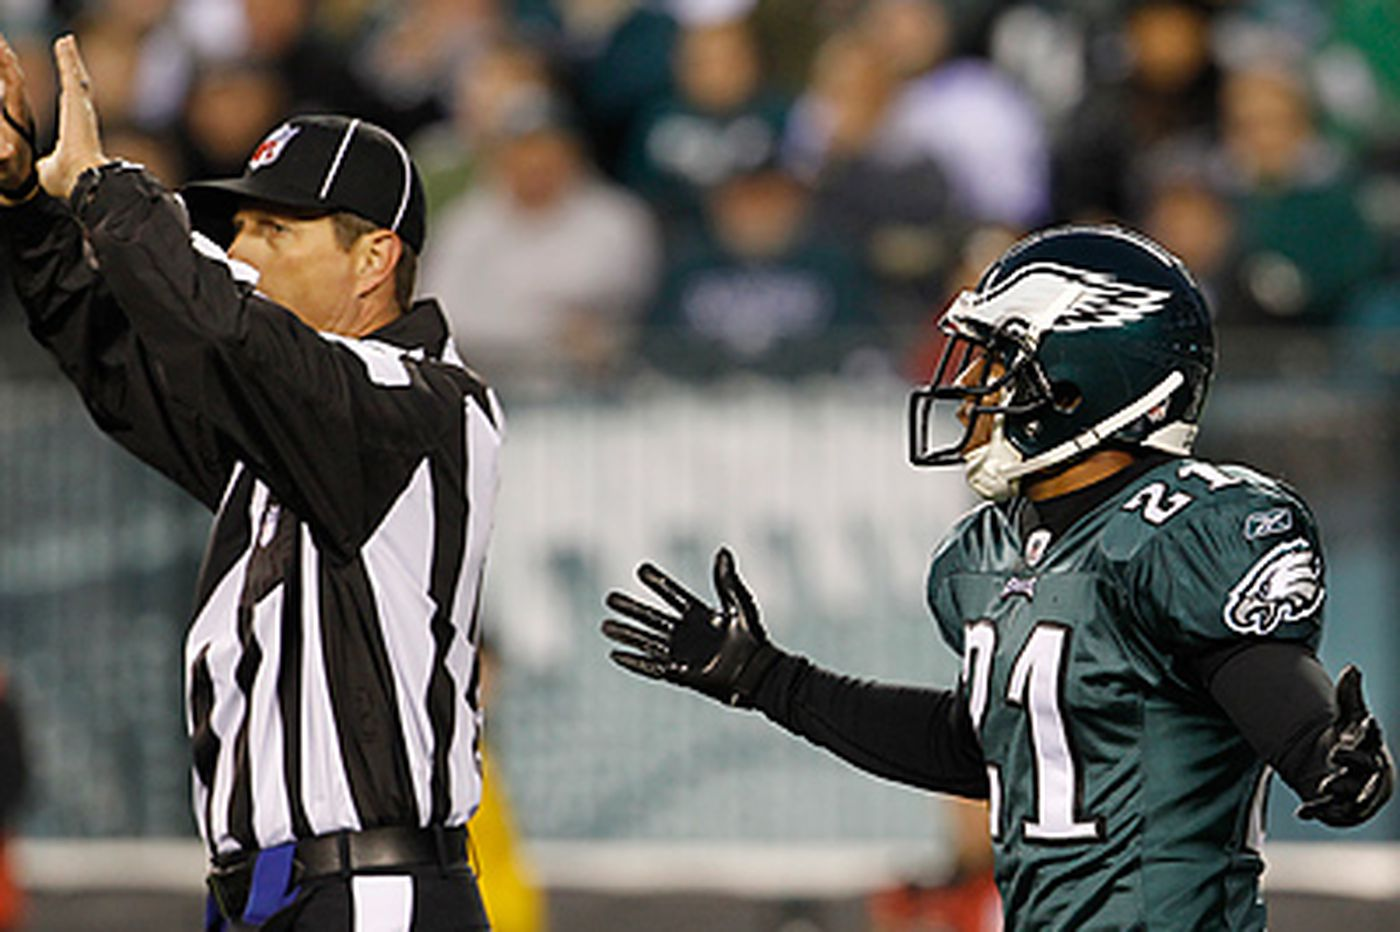 Eagles ready to turn to reliable Hanson in defensive backfield if needed